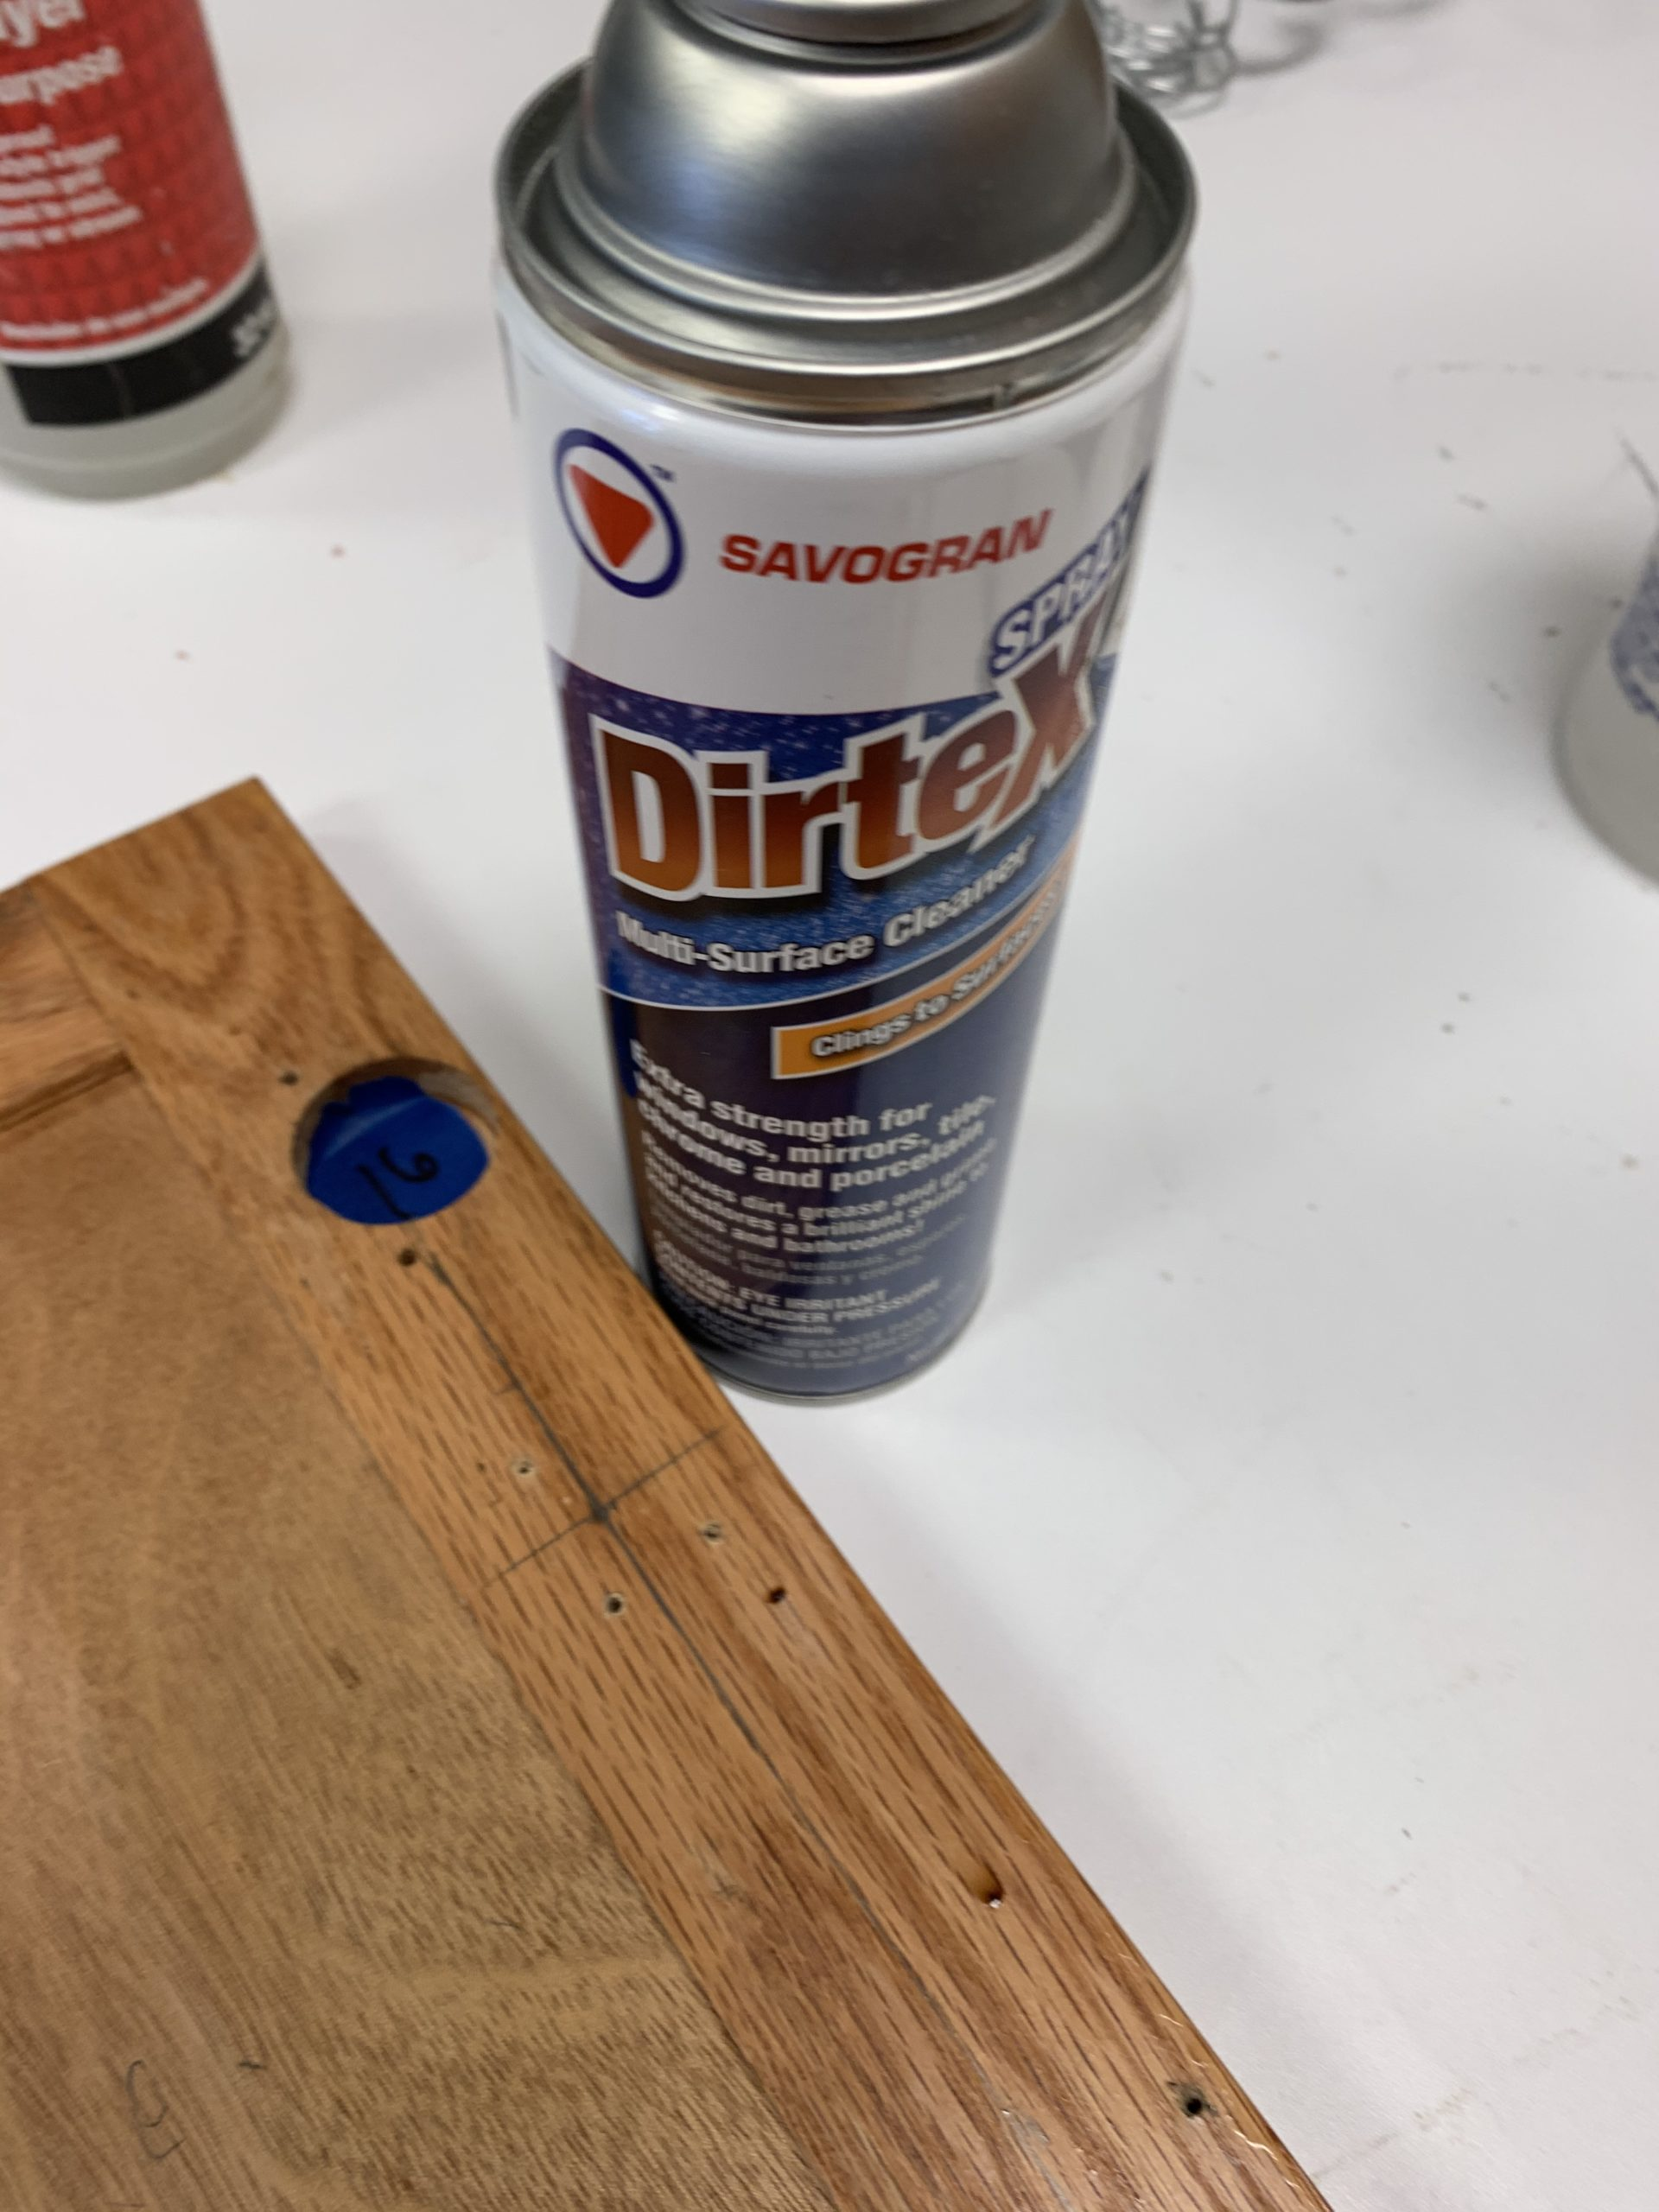 Dirtex cleaner - kitchen cabinet cleaning